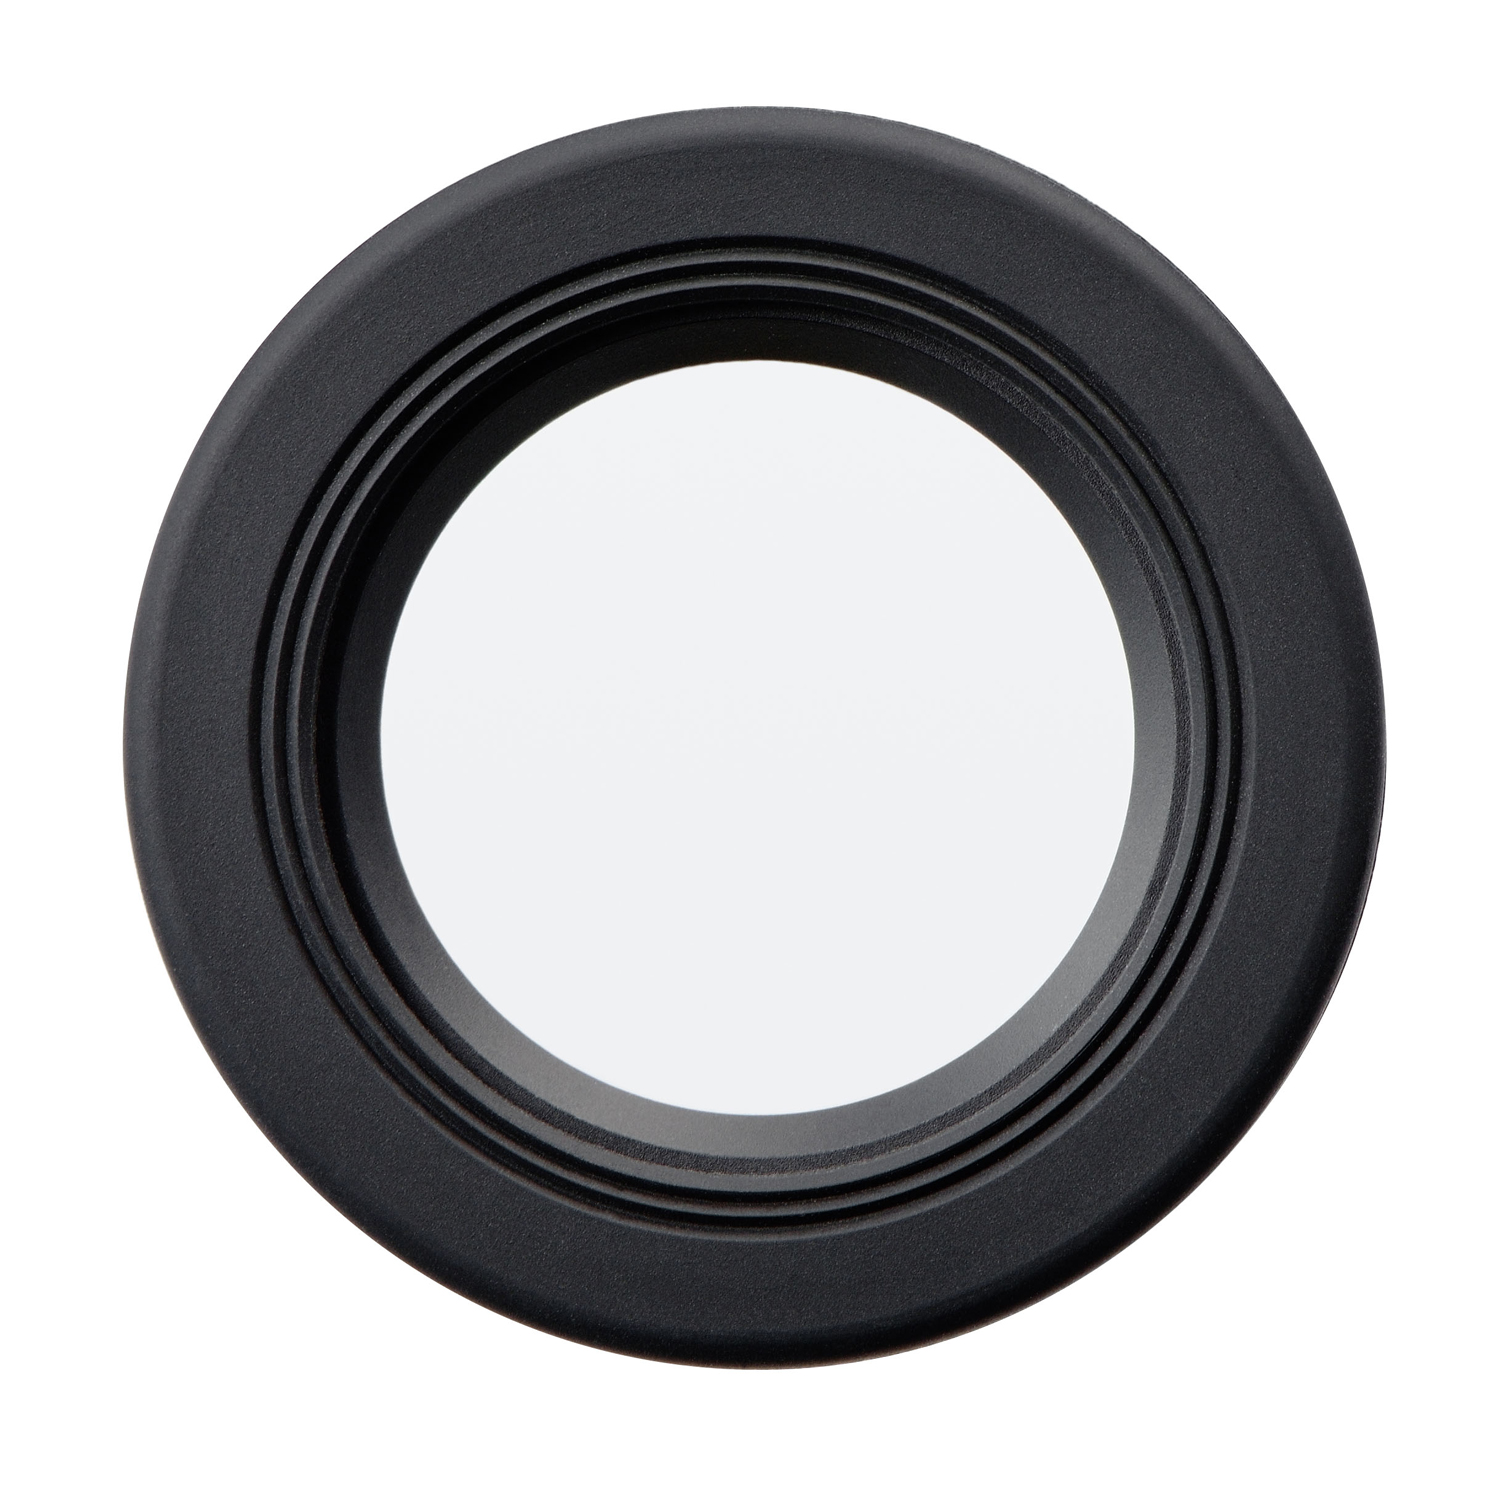 DK-17F Fluorine Coated Finder Eyepiece for D500